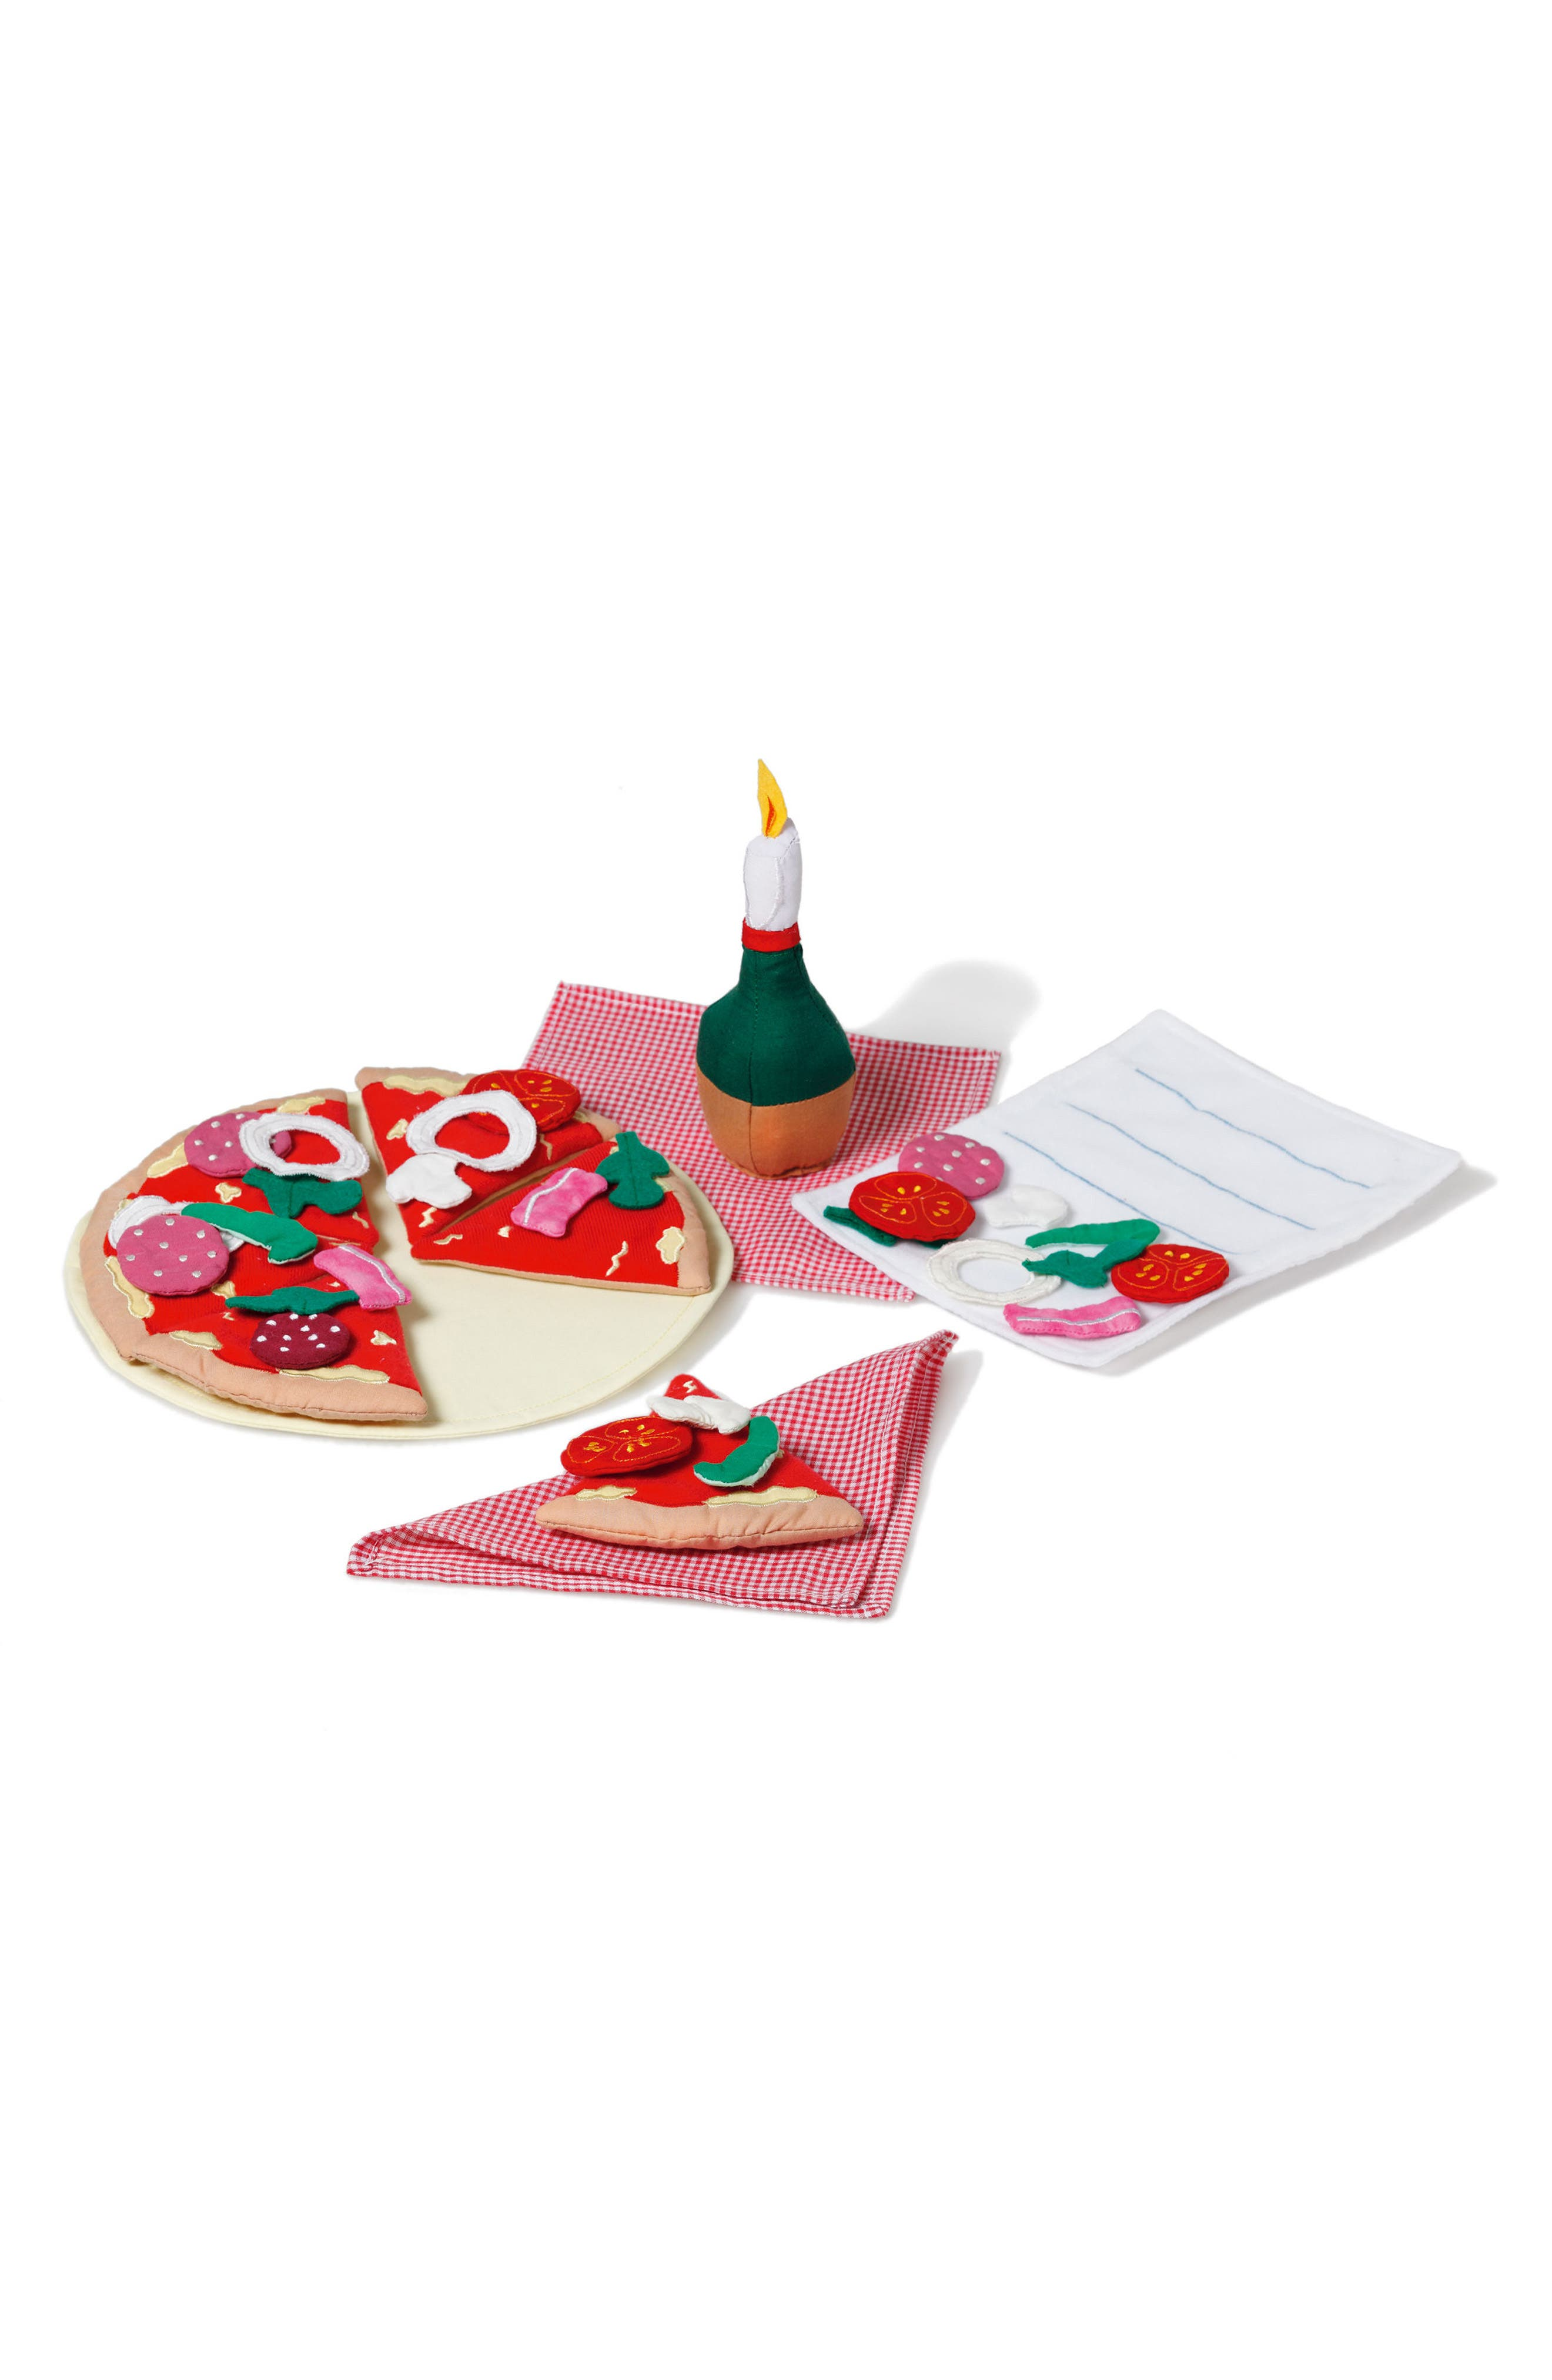 Main Image - oskar&ellen Pizza Set